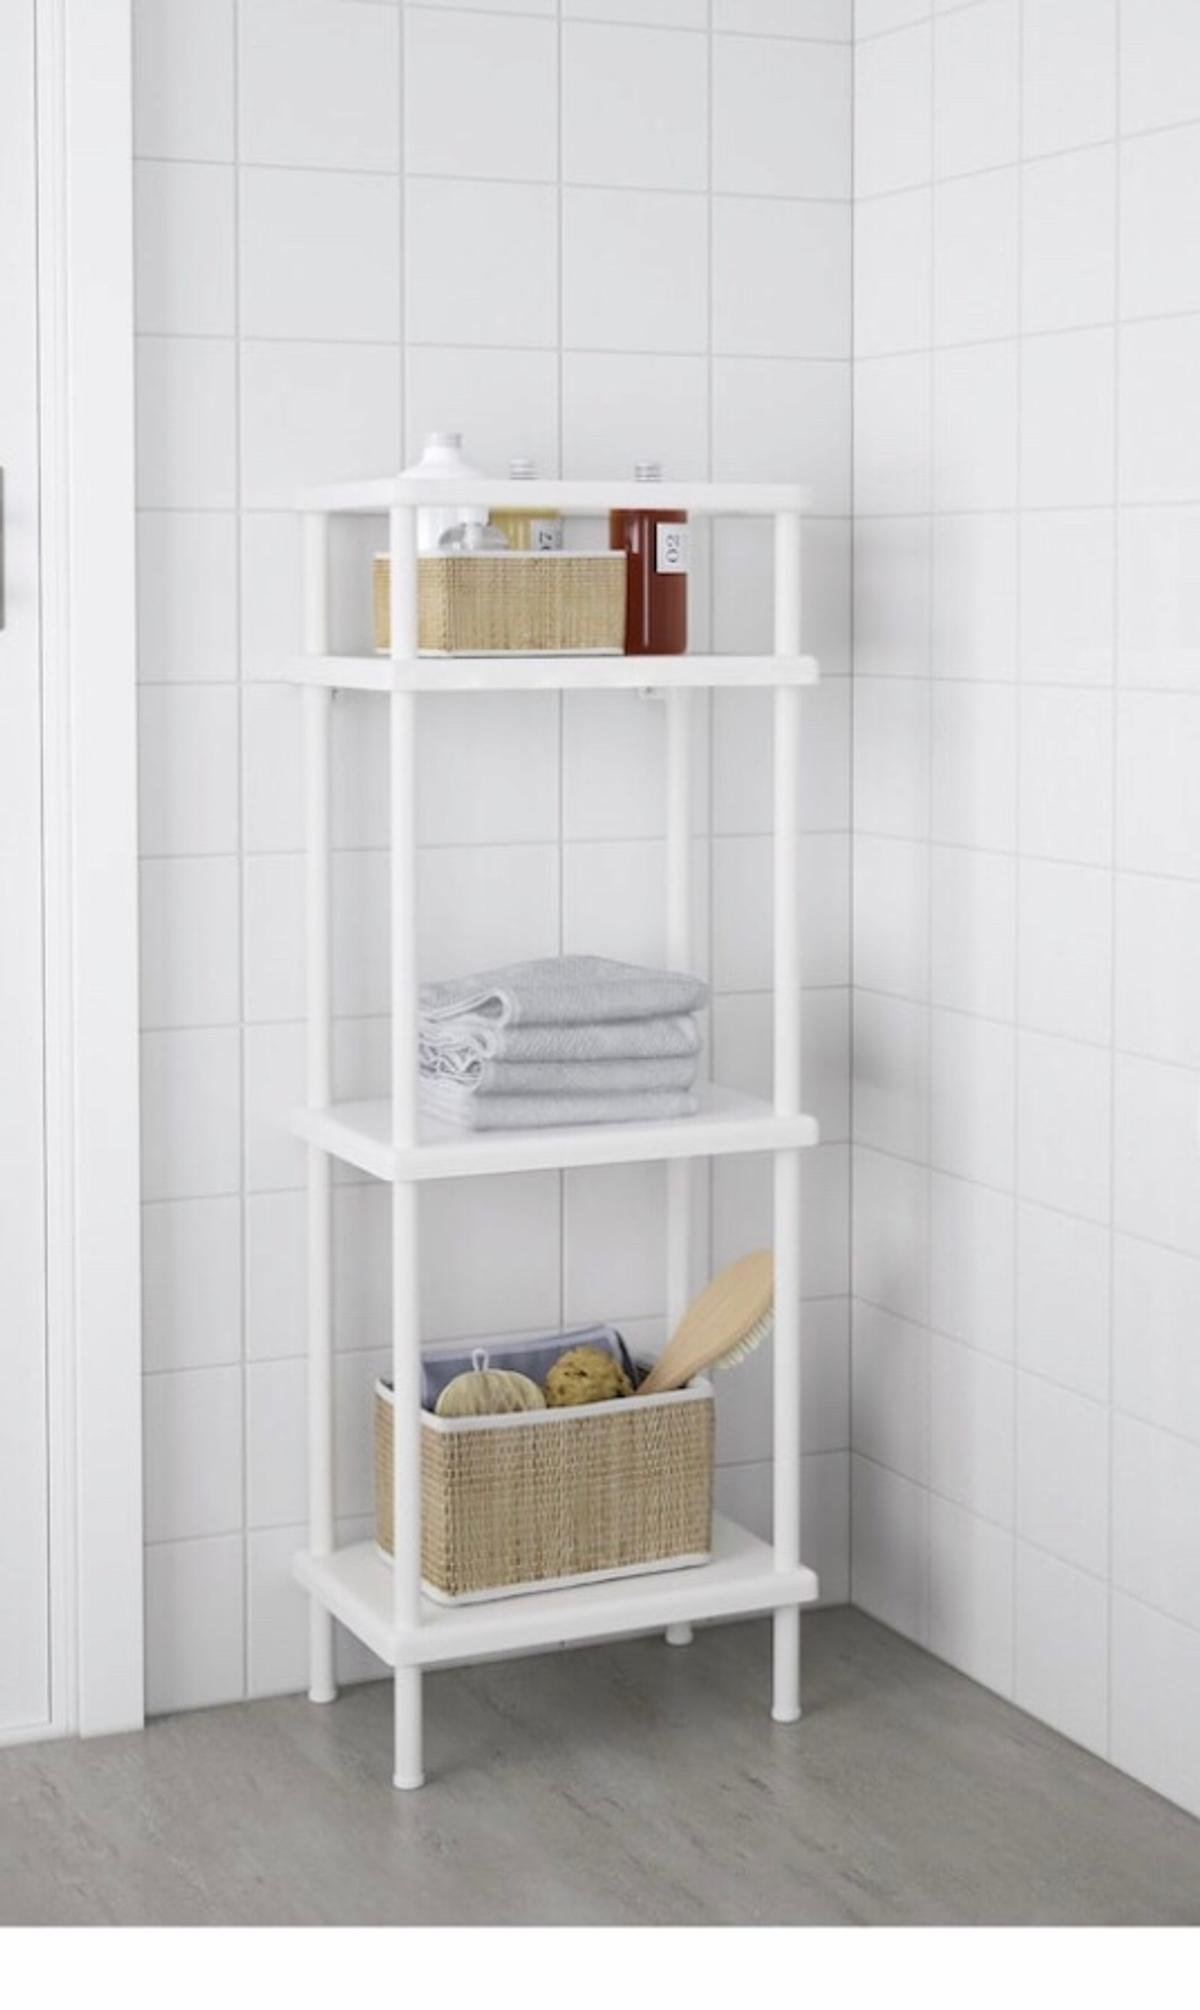 Bathroom Shelving Unit In Ls1 Leeds For